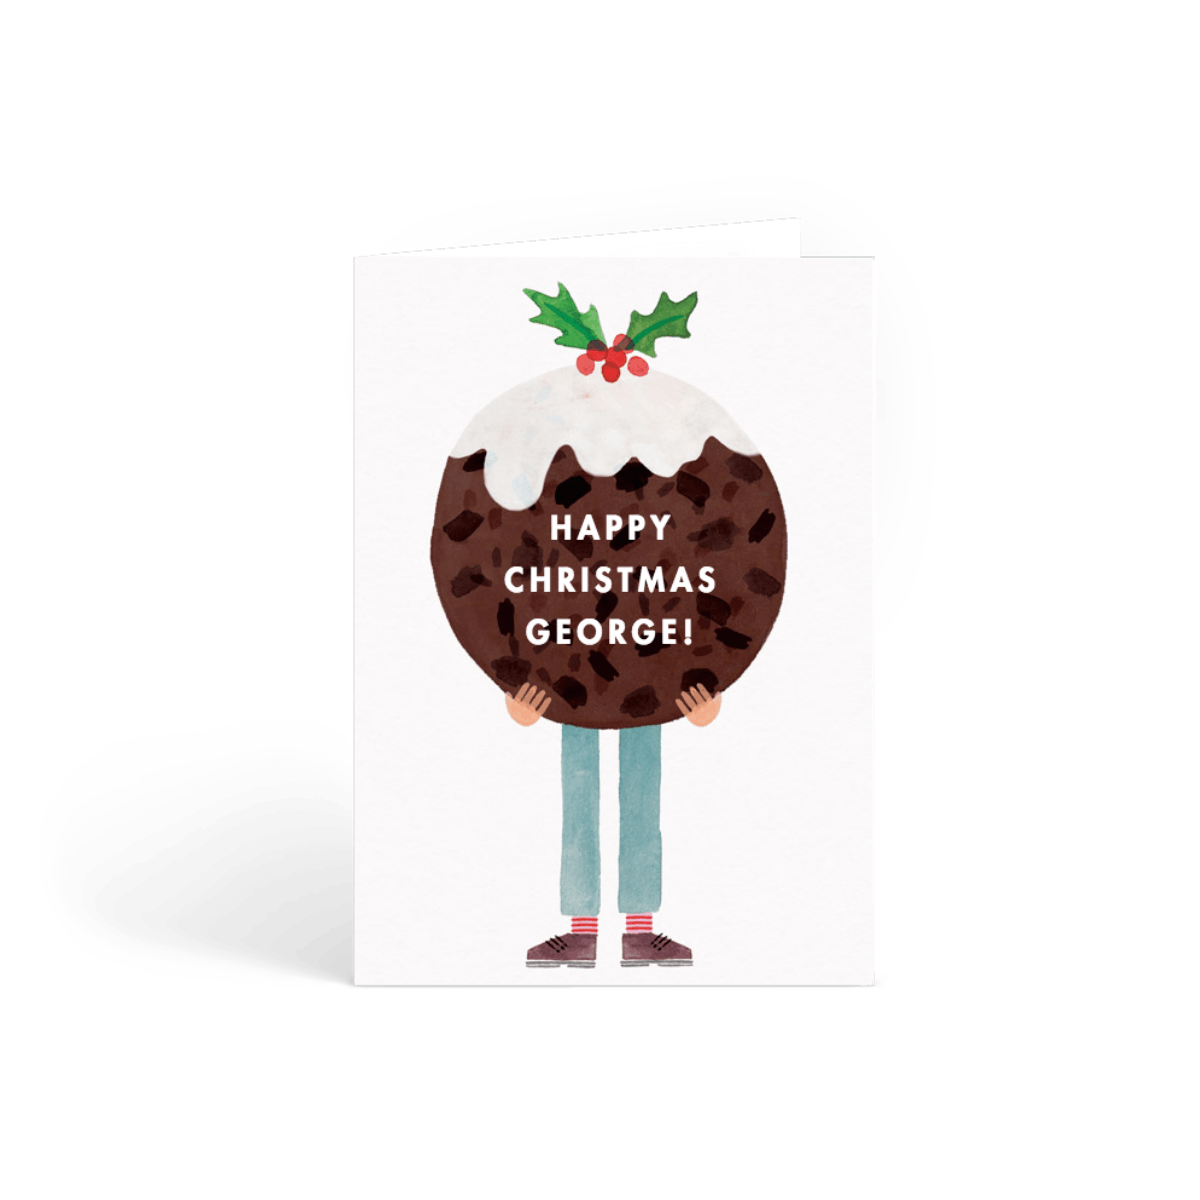 Https%3a%2f%2fwww.papier.com%2fproduct image%2f8493%2f2%2fchristmas pudding boy 2105 front 1476092907.png?ixlib=rb 1.1